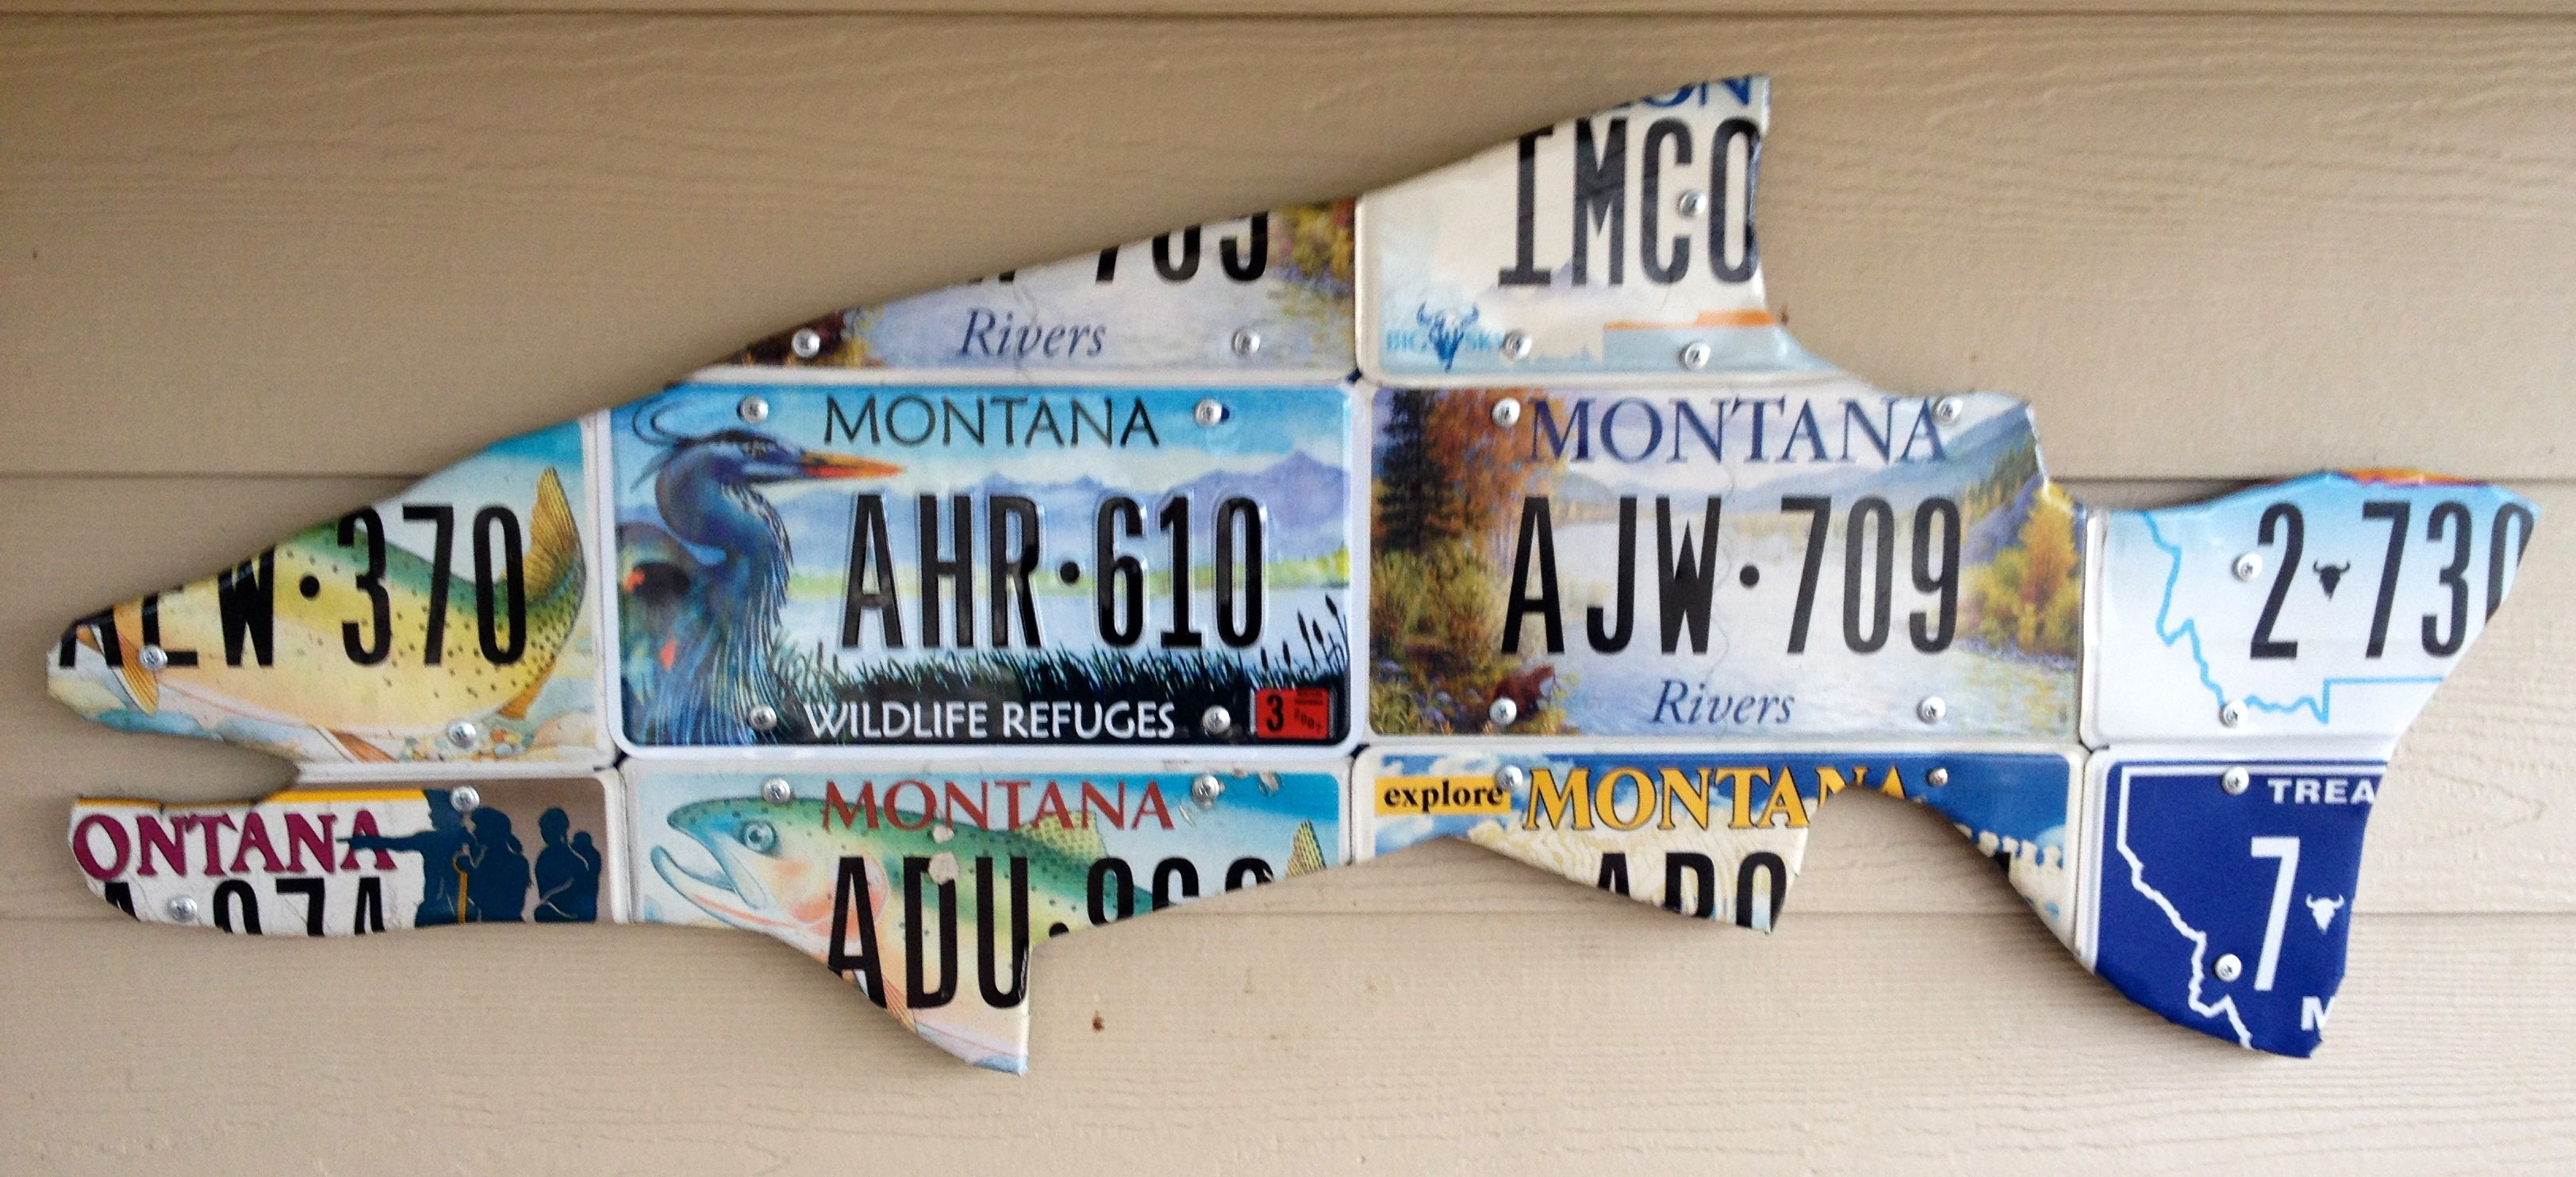 Mix Montana License Plate Trout Cutthroat And Blue Heron Plates